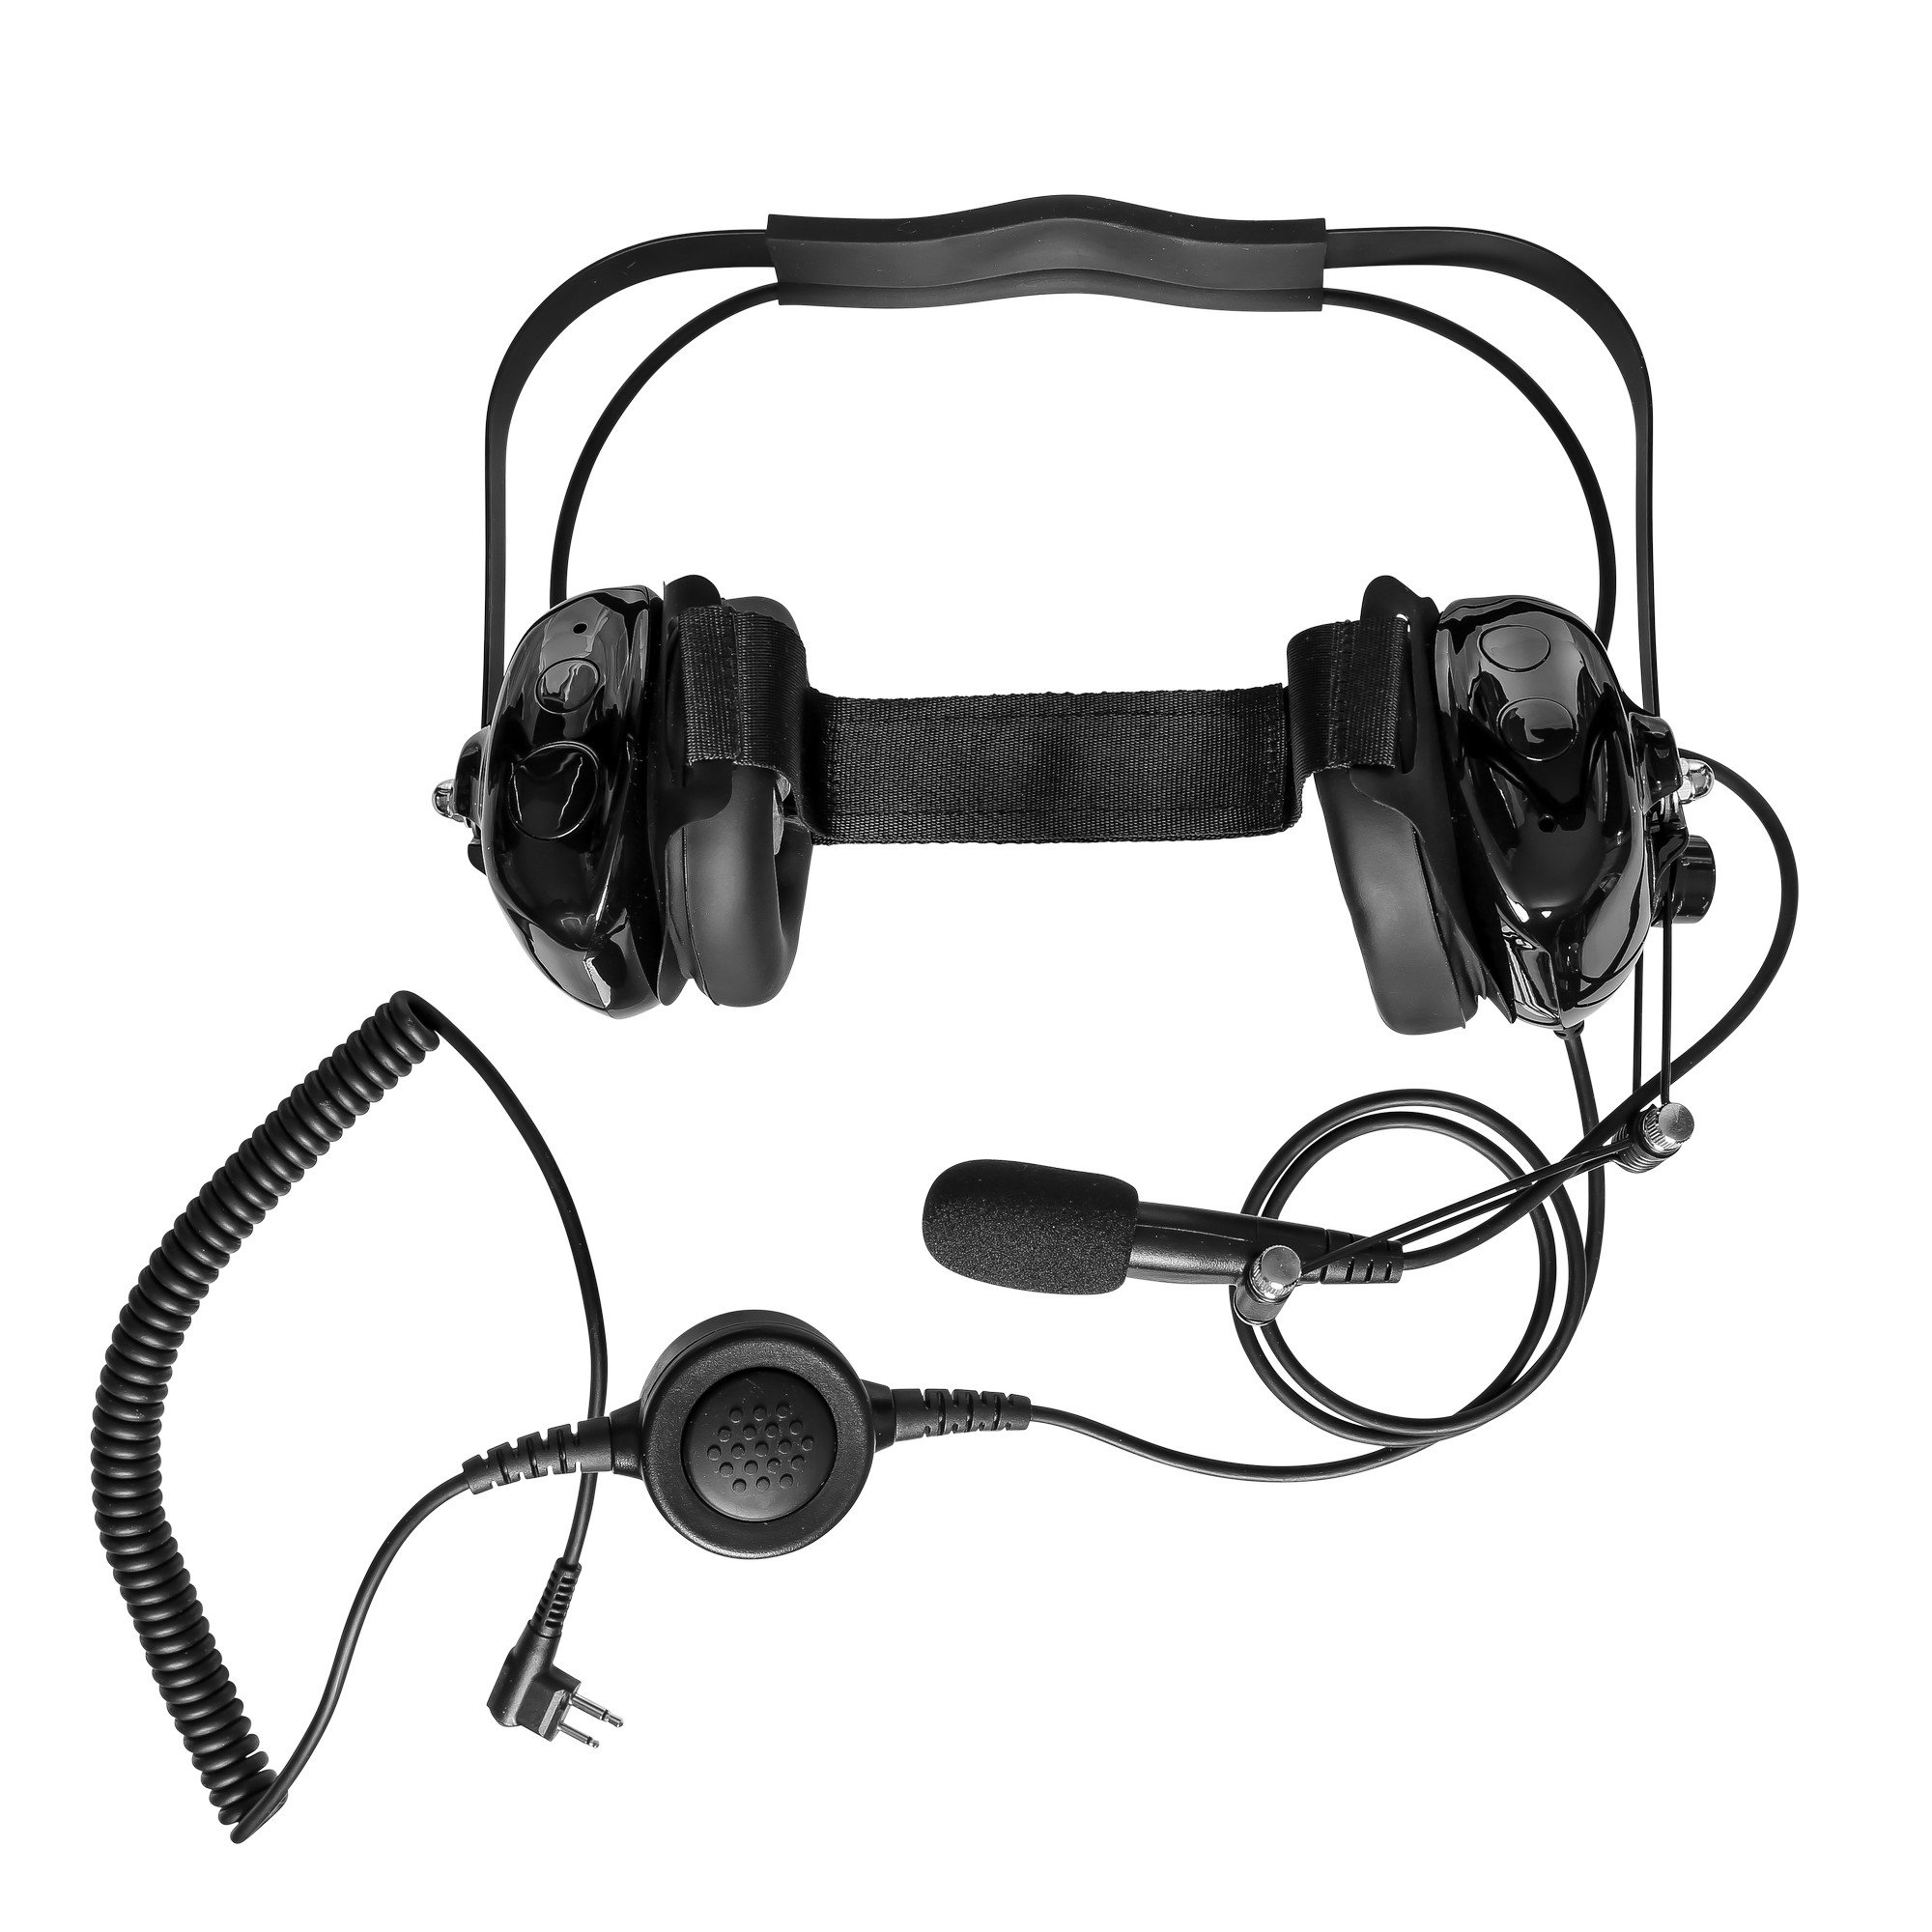 Maxtop AHDH0032-BK-M1 Two Way Radio Noise Cancelling Headset for Motorola CP200 CP200D BPR40 EP450 BearCom BC130